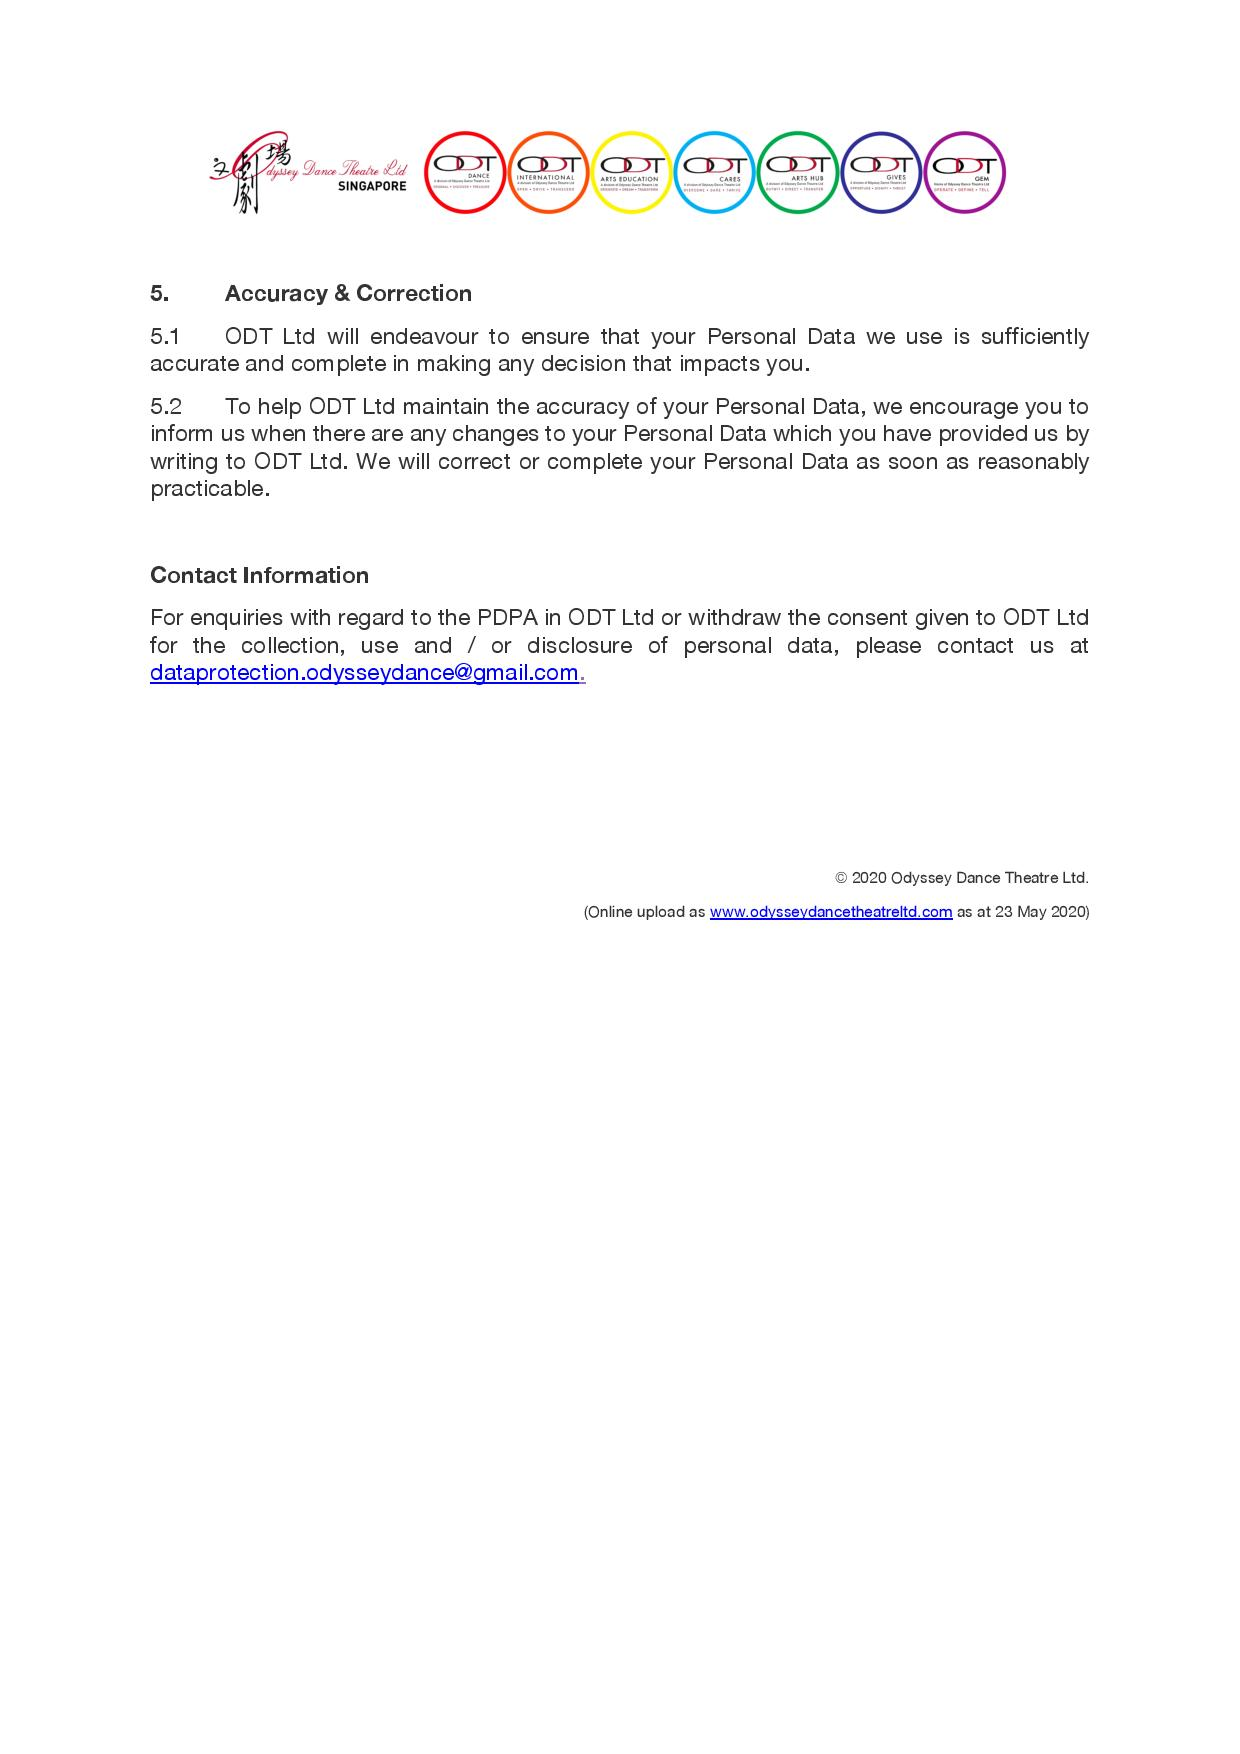 privacy-policy-page-003